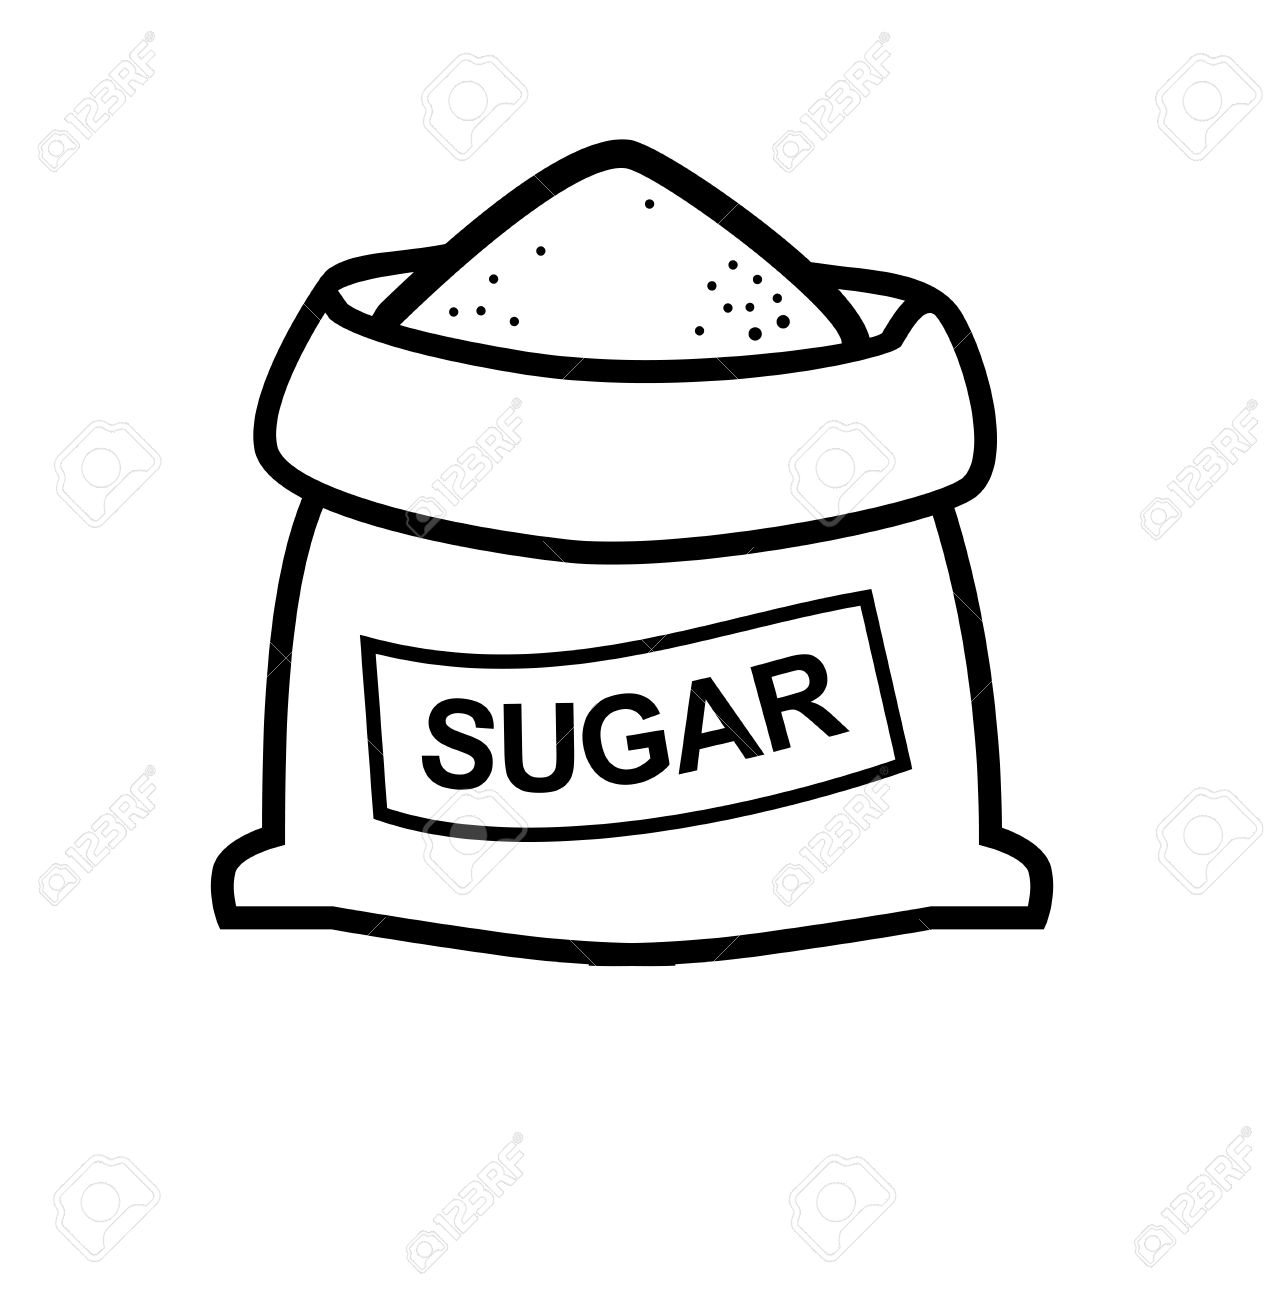 Sugar clipart #15, Download drawings